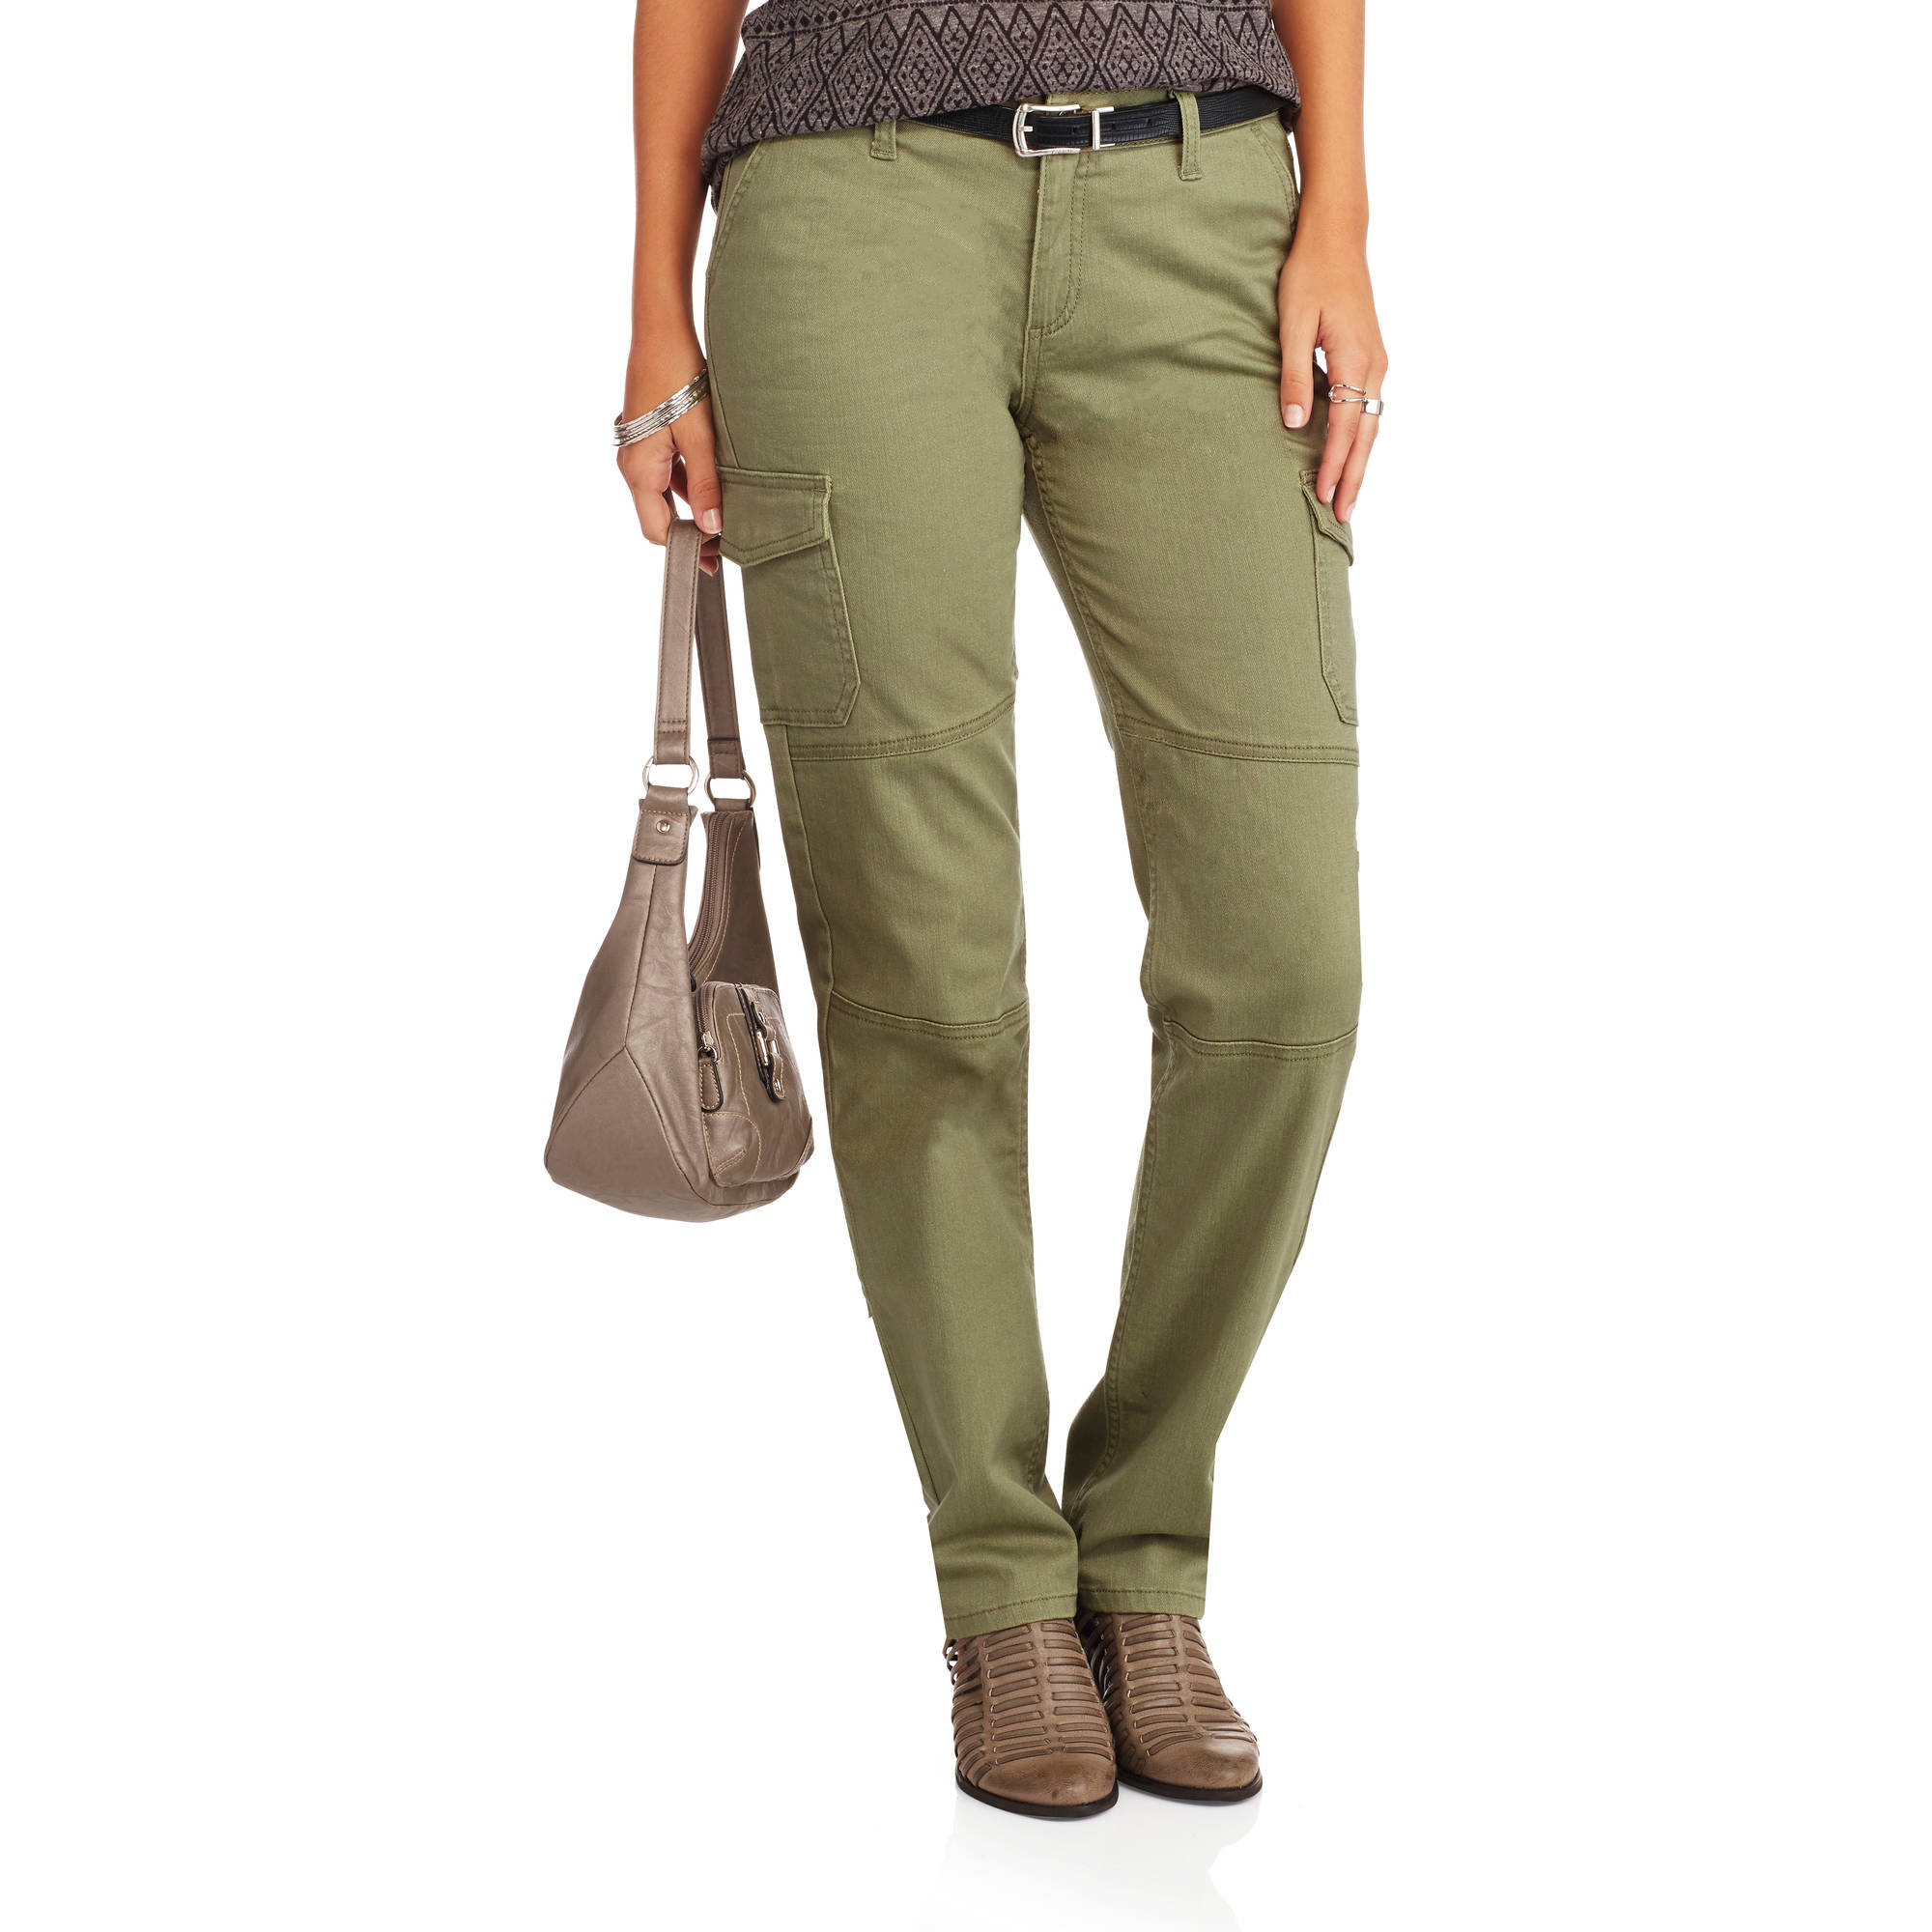 Lastest Whether Youre Taking On A Challenging Hike Through A Remote Wilderness, Or Running Errands Around Town On Your Day Off, Youll Appreciate Dependable And Fashionable Womens Straight Leg Pants From Columbia Sportswear Every Closet